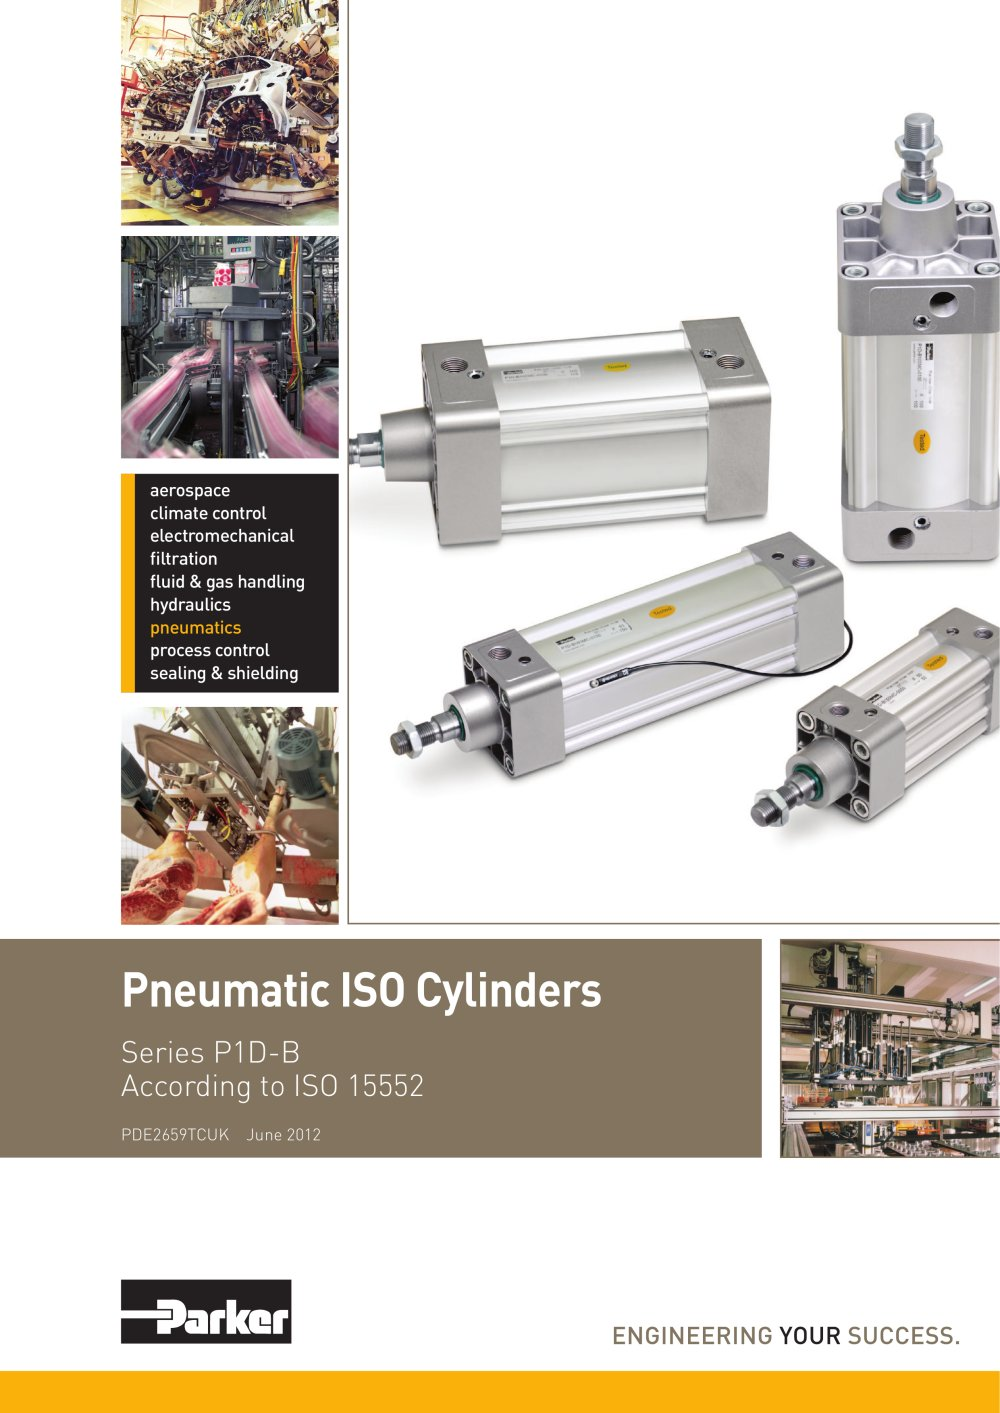 pneumatic cylinders p1d b series technical catalogue pde2659tcuk 290783_1b pneumatic cylinders p1d b series technical catalogue Parker Sensor Reed at mifinder.co